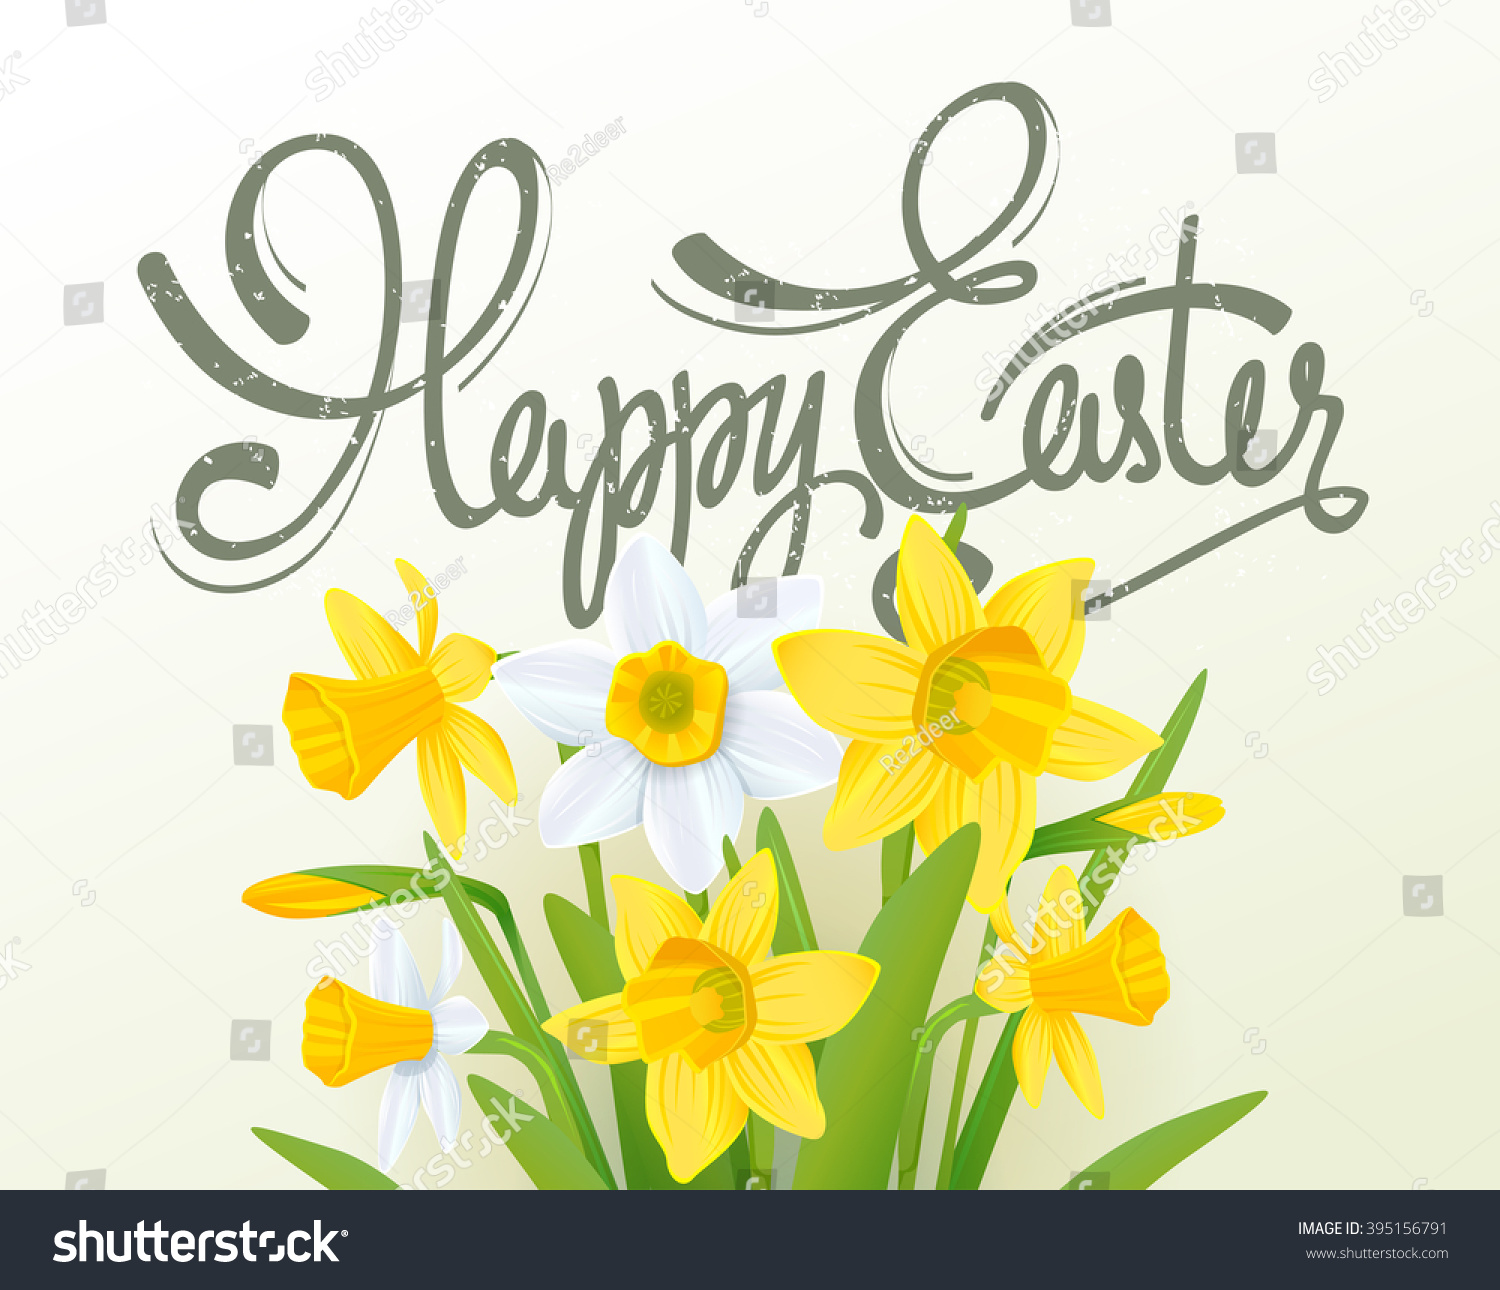 Happy easter lettering calligraphy card stock vector